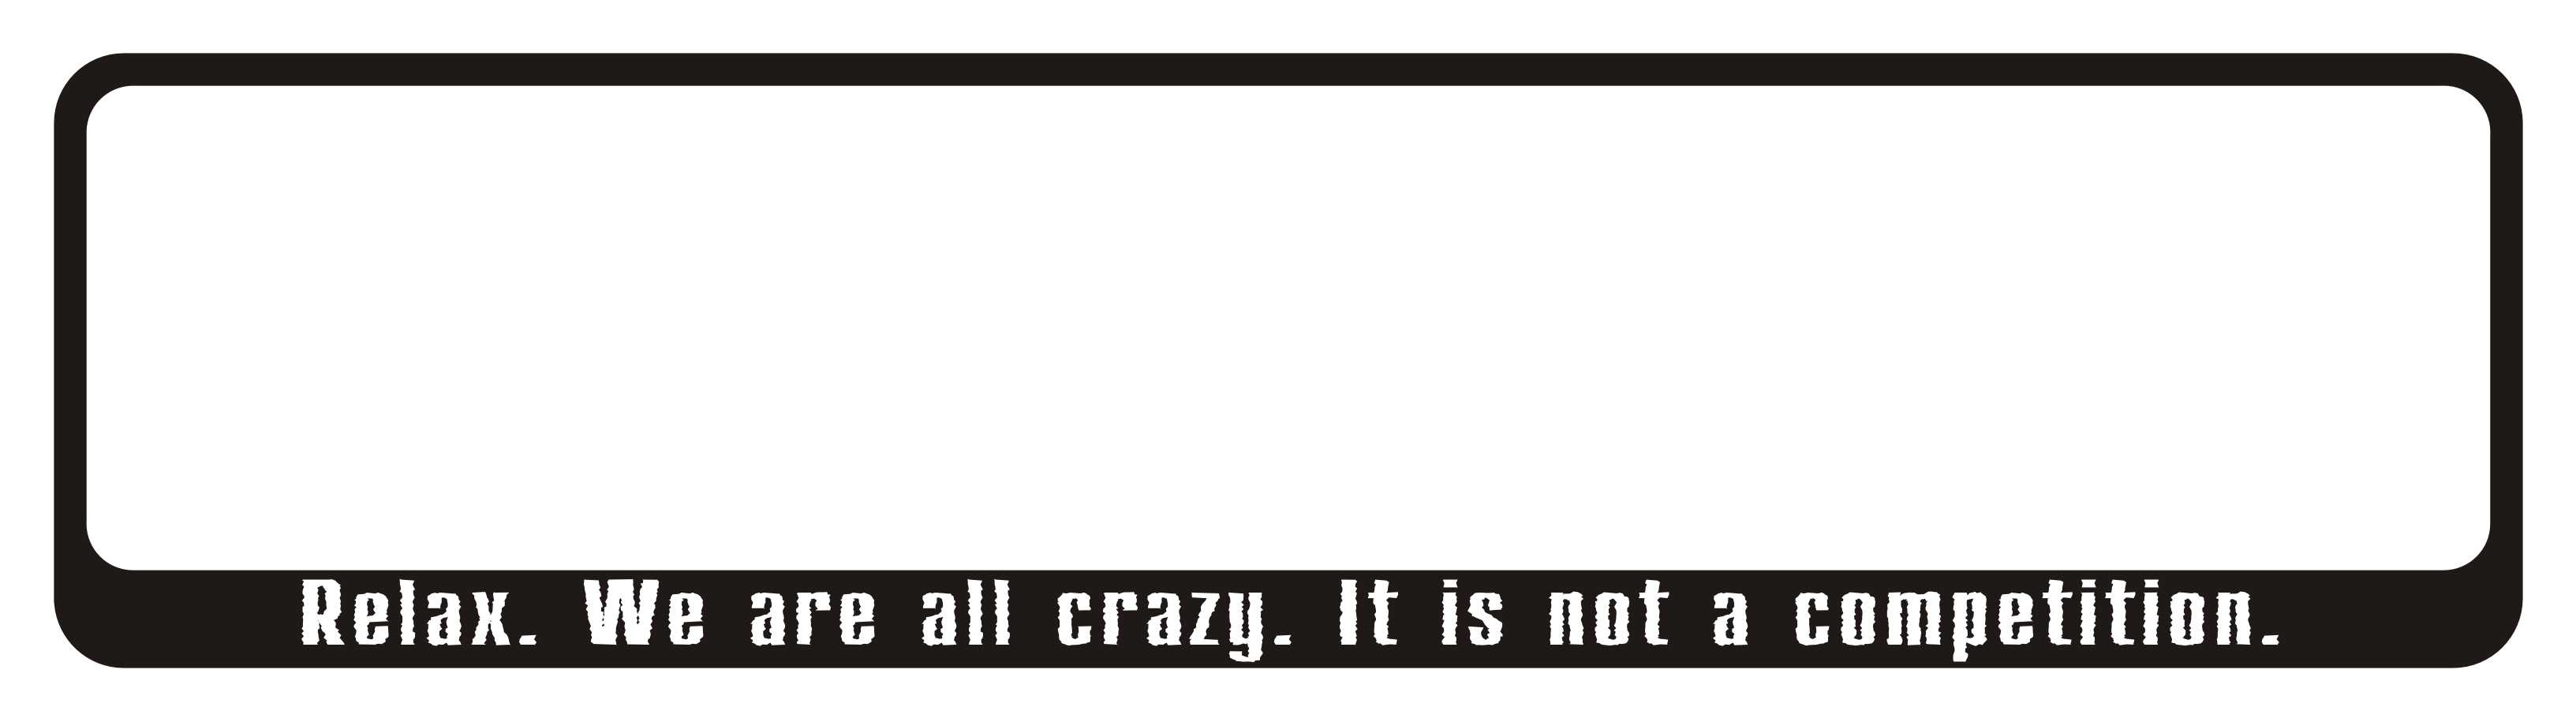 LATSIGN-Auto-numura-turetajs-paliktnis-uzlime_Halloween_Relax_We_are_all_crazy_It_is_not_a_competition